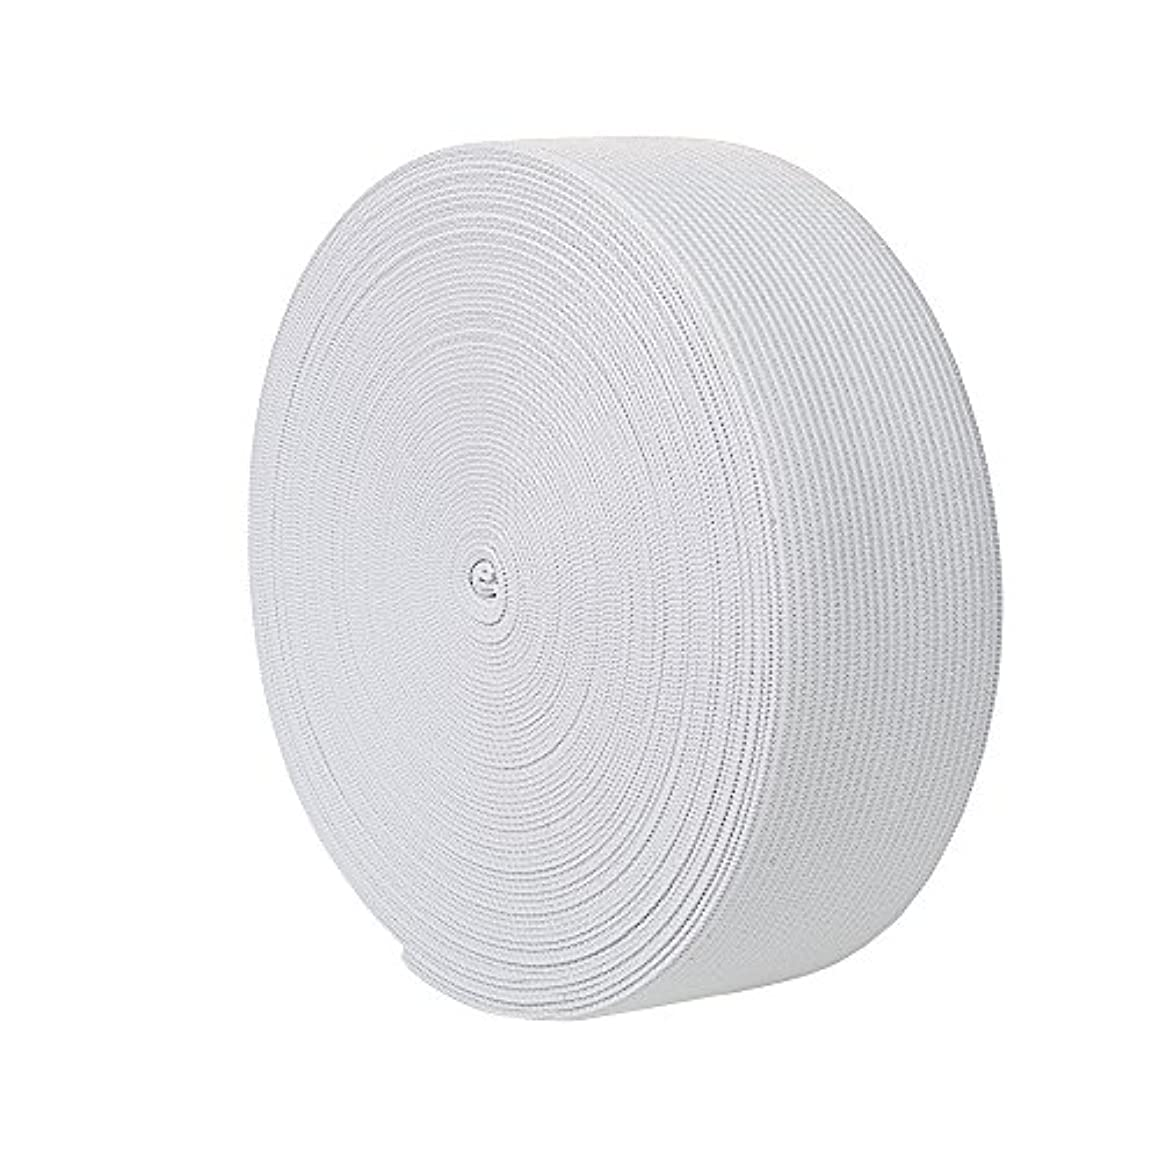 NW Elastic Bands Spool for Sewing (White, 1.5 Inch)